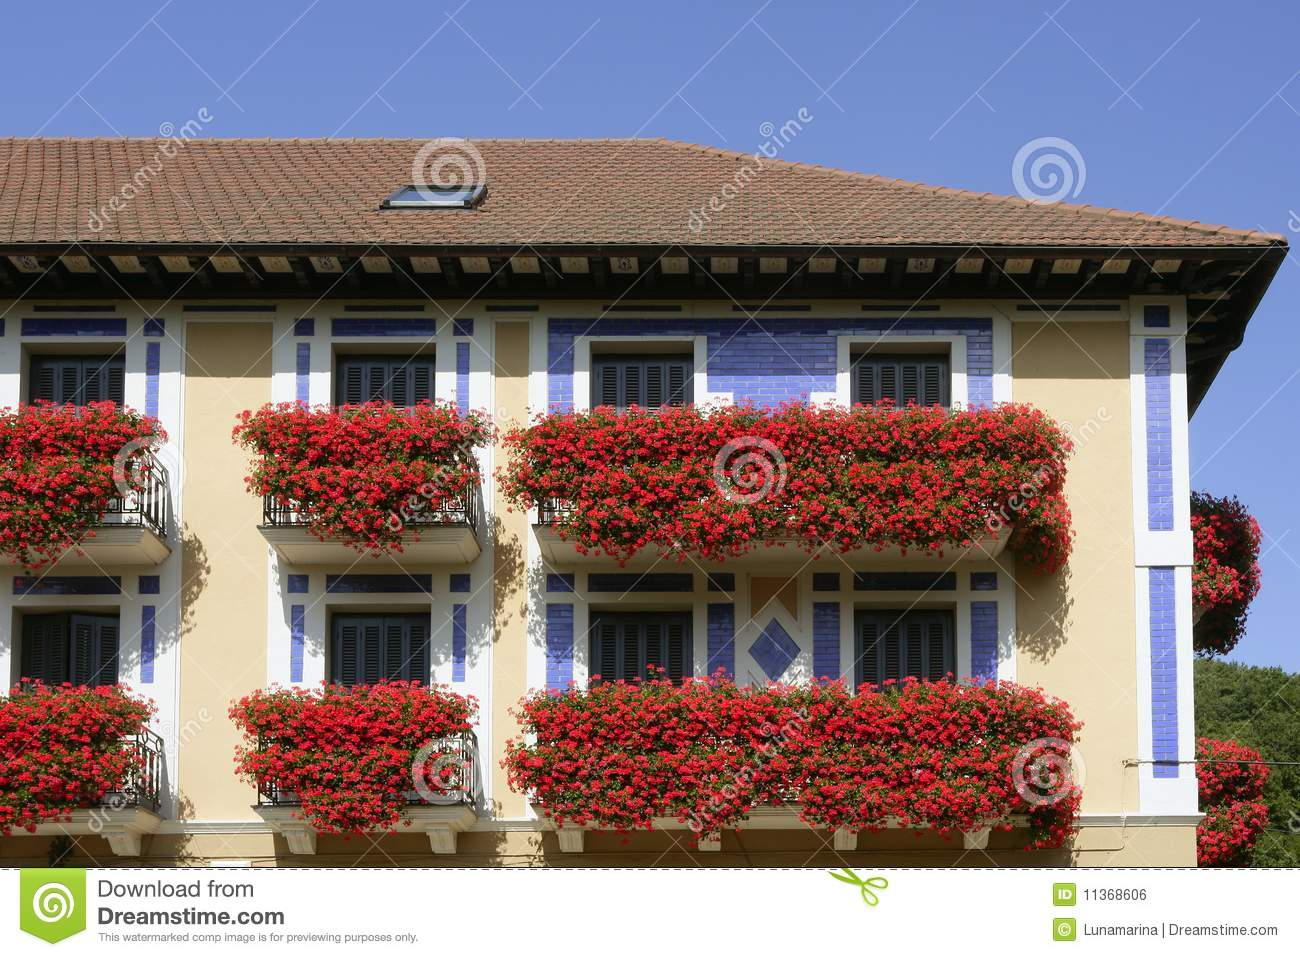 sch nes haus in navarra mit blumen auf balkon lizenzfreies stockbild bild 11368606. Black Bedroom Furniture Sets. Home Design Ideas